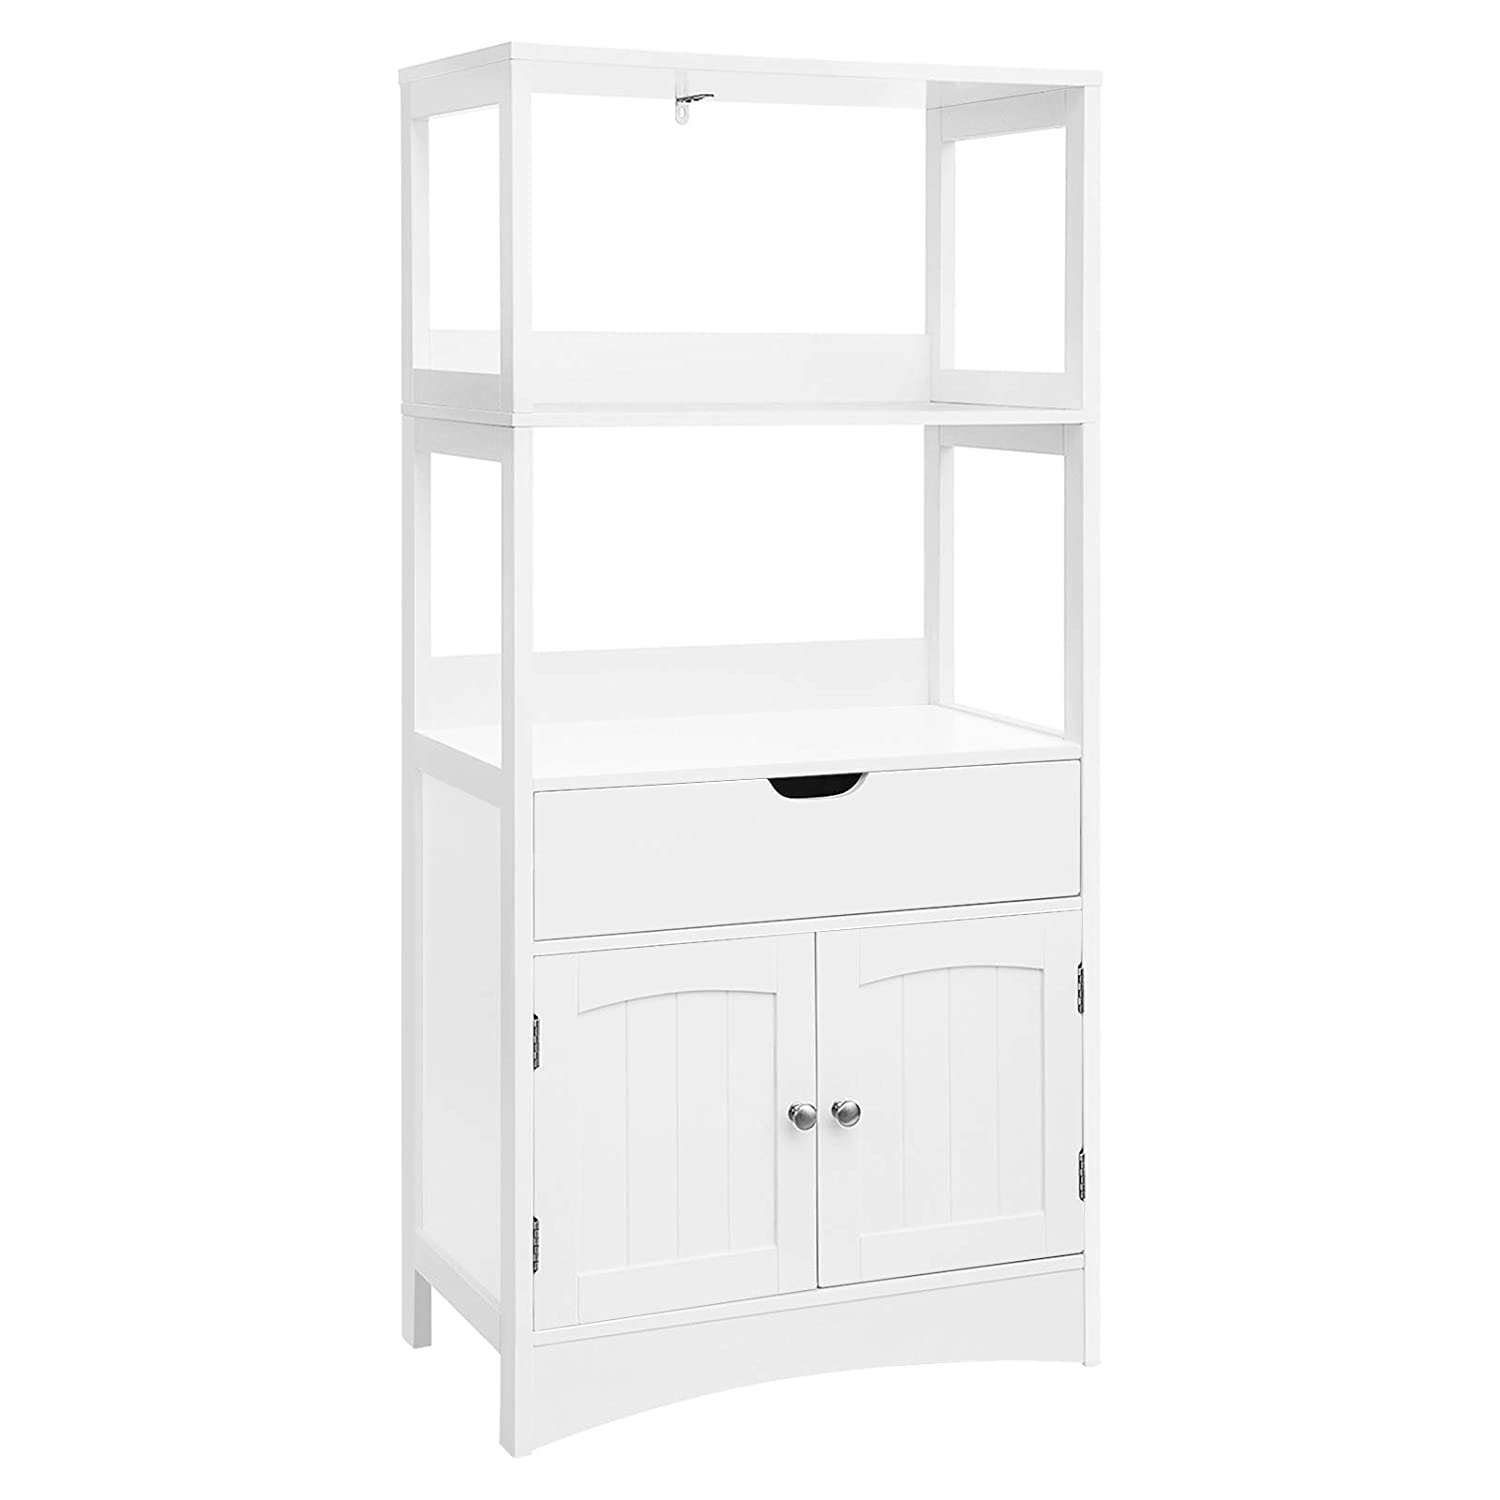 SONGMICS Bathroom Storage Cabinet with Drawer, 2 Open Shelves and Door Cupboard, Large Floor Cabinet in the Entryway Kitchen, White, UBBC64WT